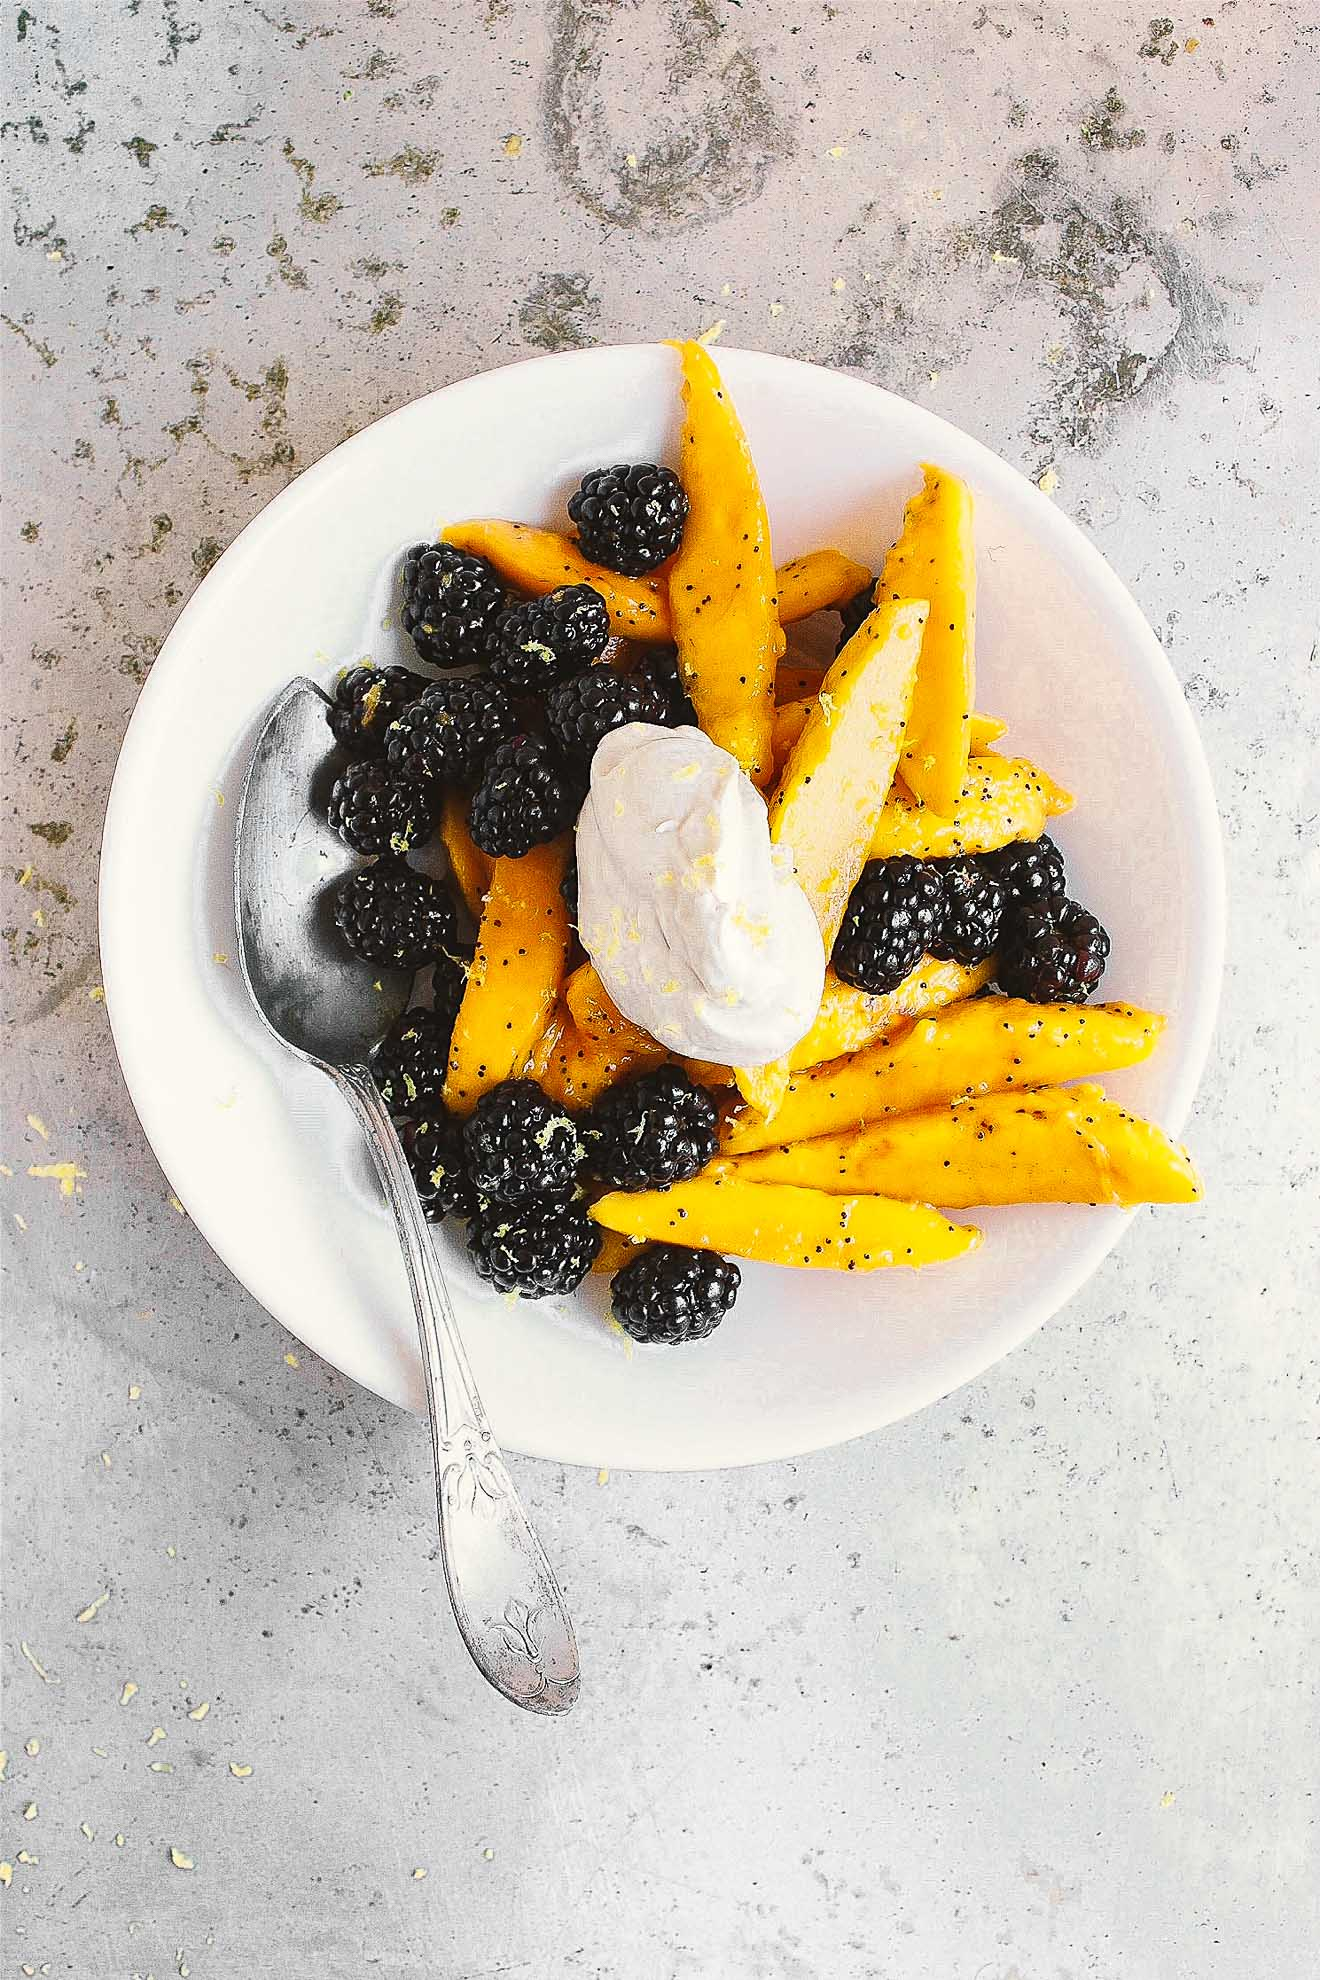 Mango Fruit Salad with Poppy Seed + Earl Grey Coconut Cream | Life-changing mango fruit salad with fresh berries, honey lemon poppy seed dressing and earl grey coconut cream. The best springtime fruit salad. An easy, classy fruit salad dessert to impress.